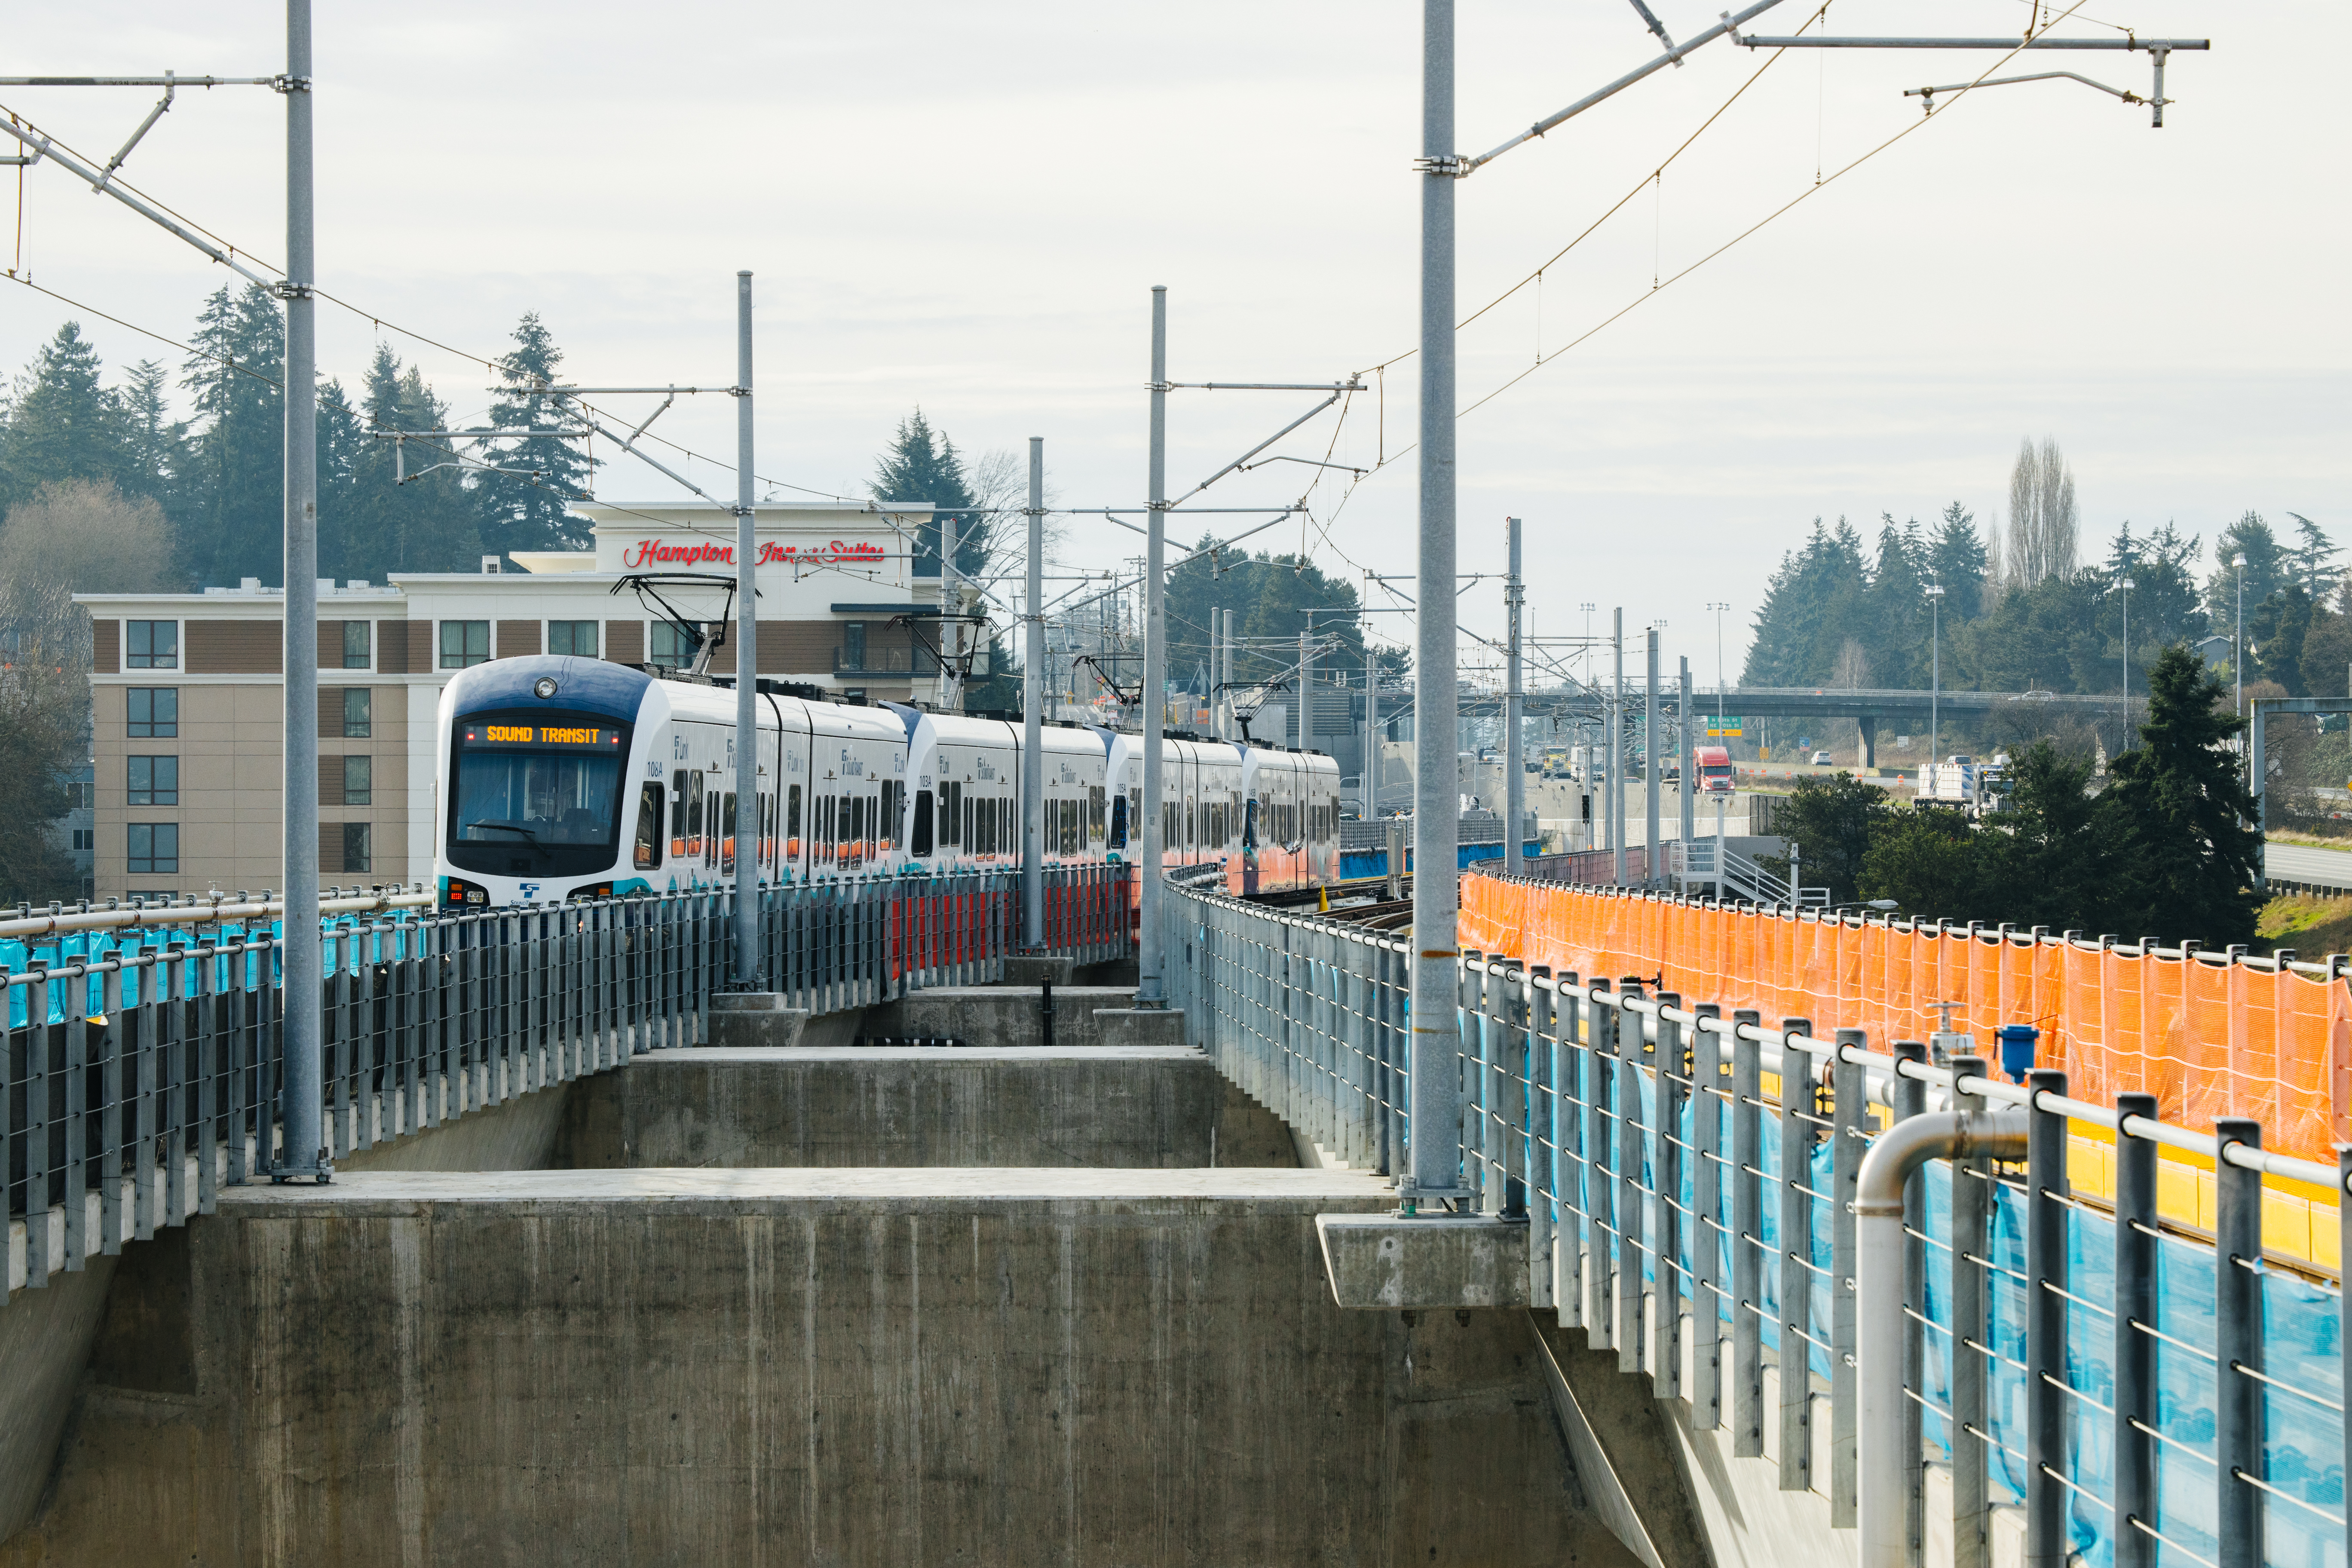 A white and black Link Light Rail train comes towards the viewer.